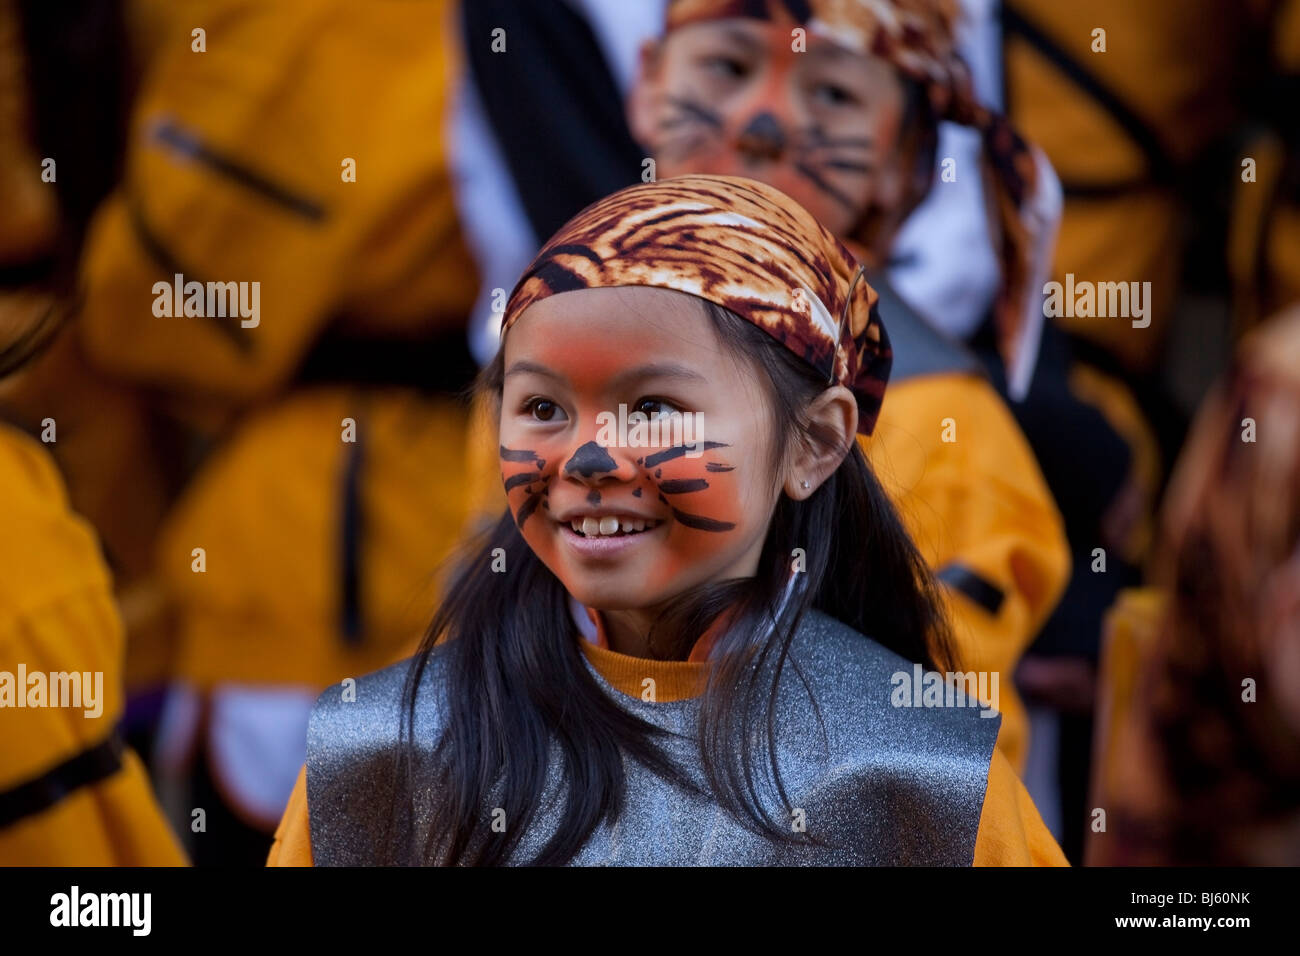 Chinese girl in tiger costume and face painted for Chinese New Year Parade in San Francisco, California. - Stock Image